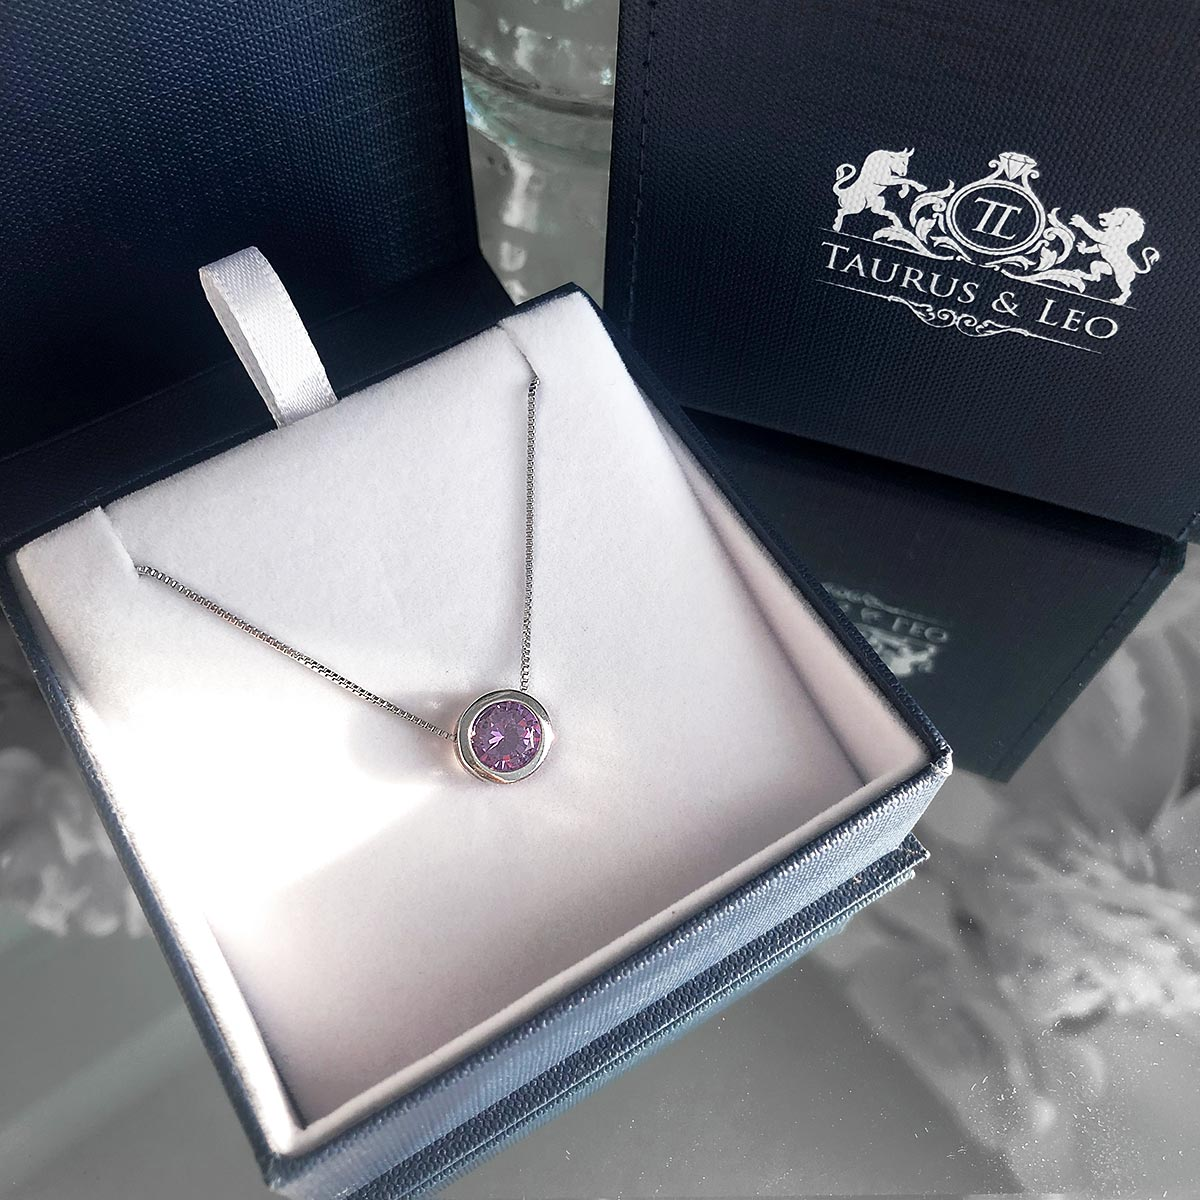 necklace, silver necklace, charm necklace, sterling silver necklace, box link chain, amethyst necklace